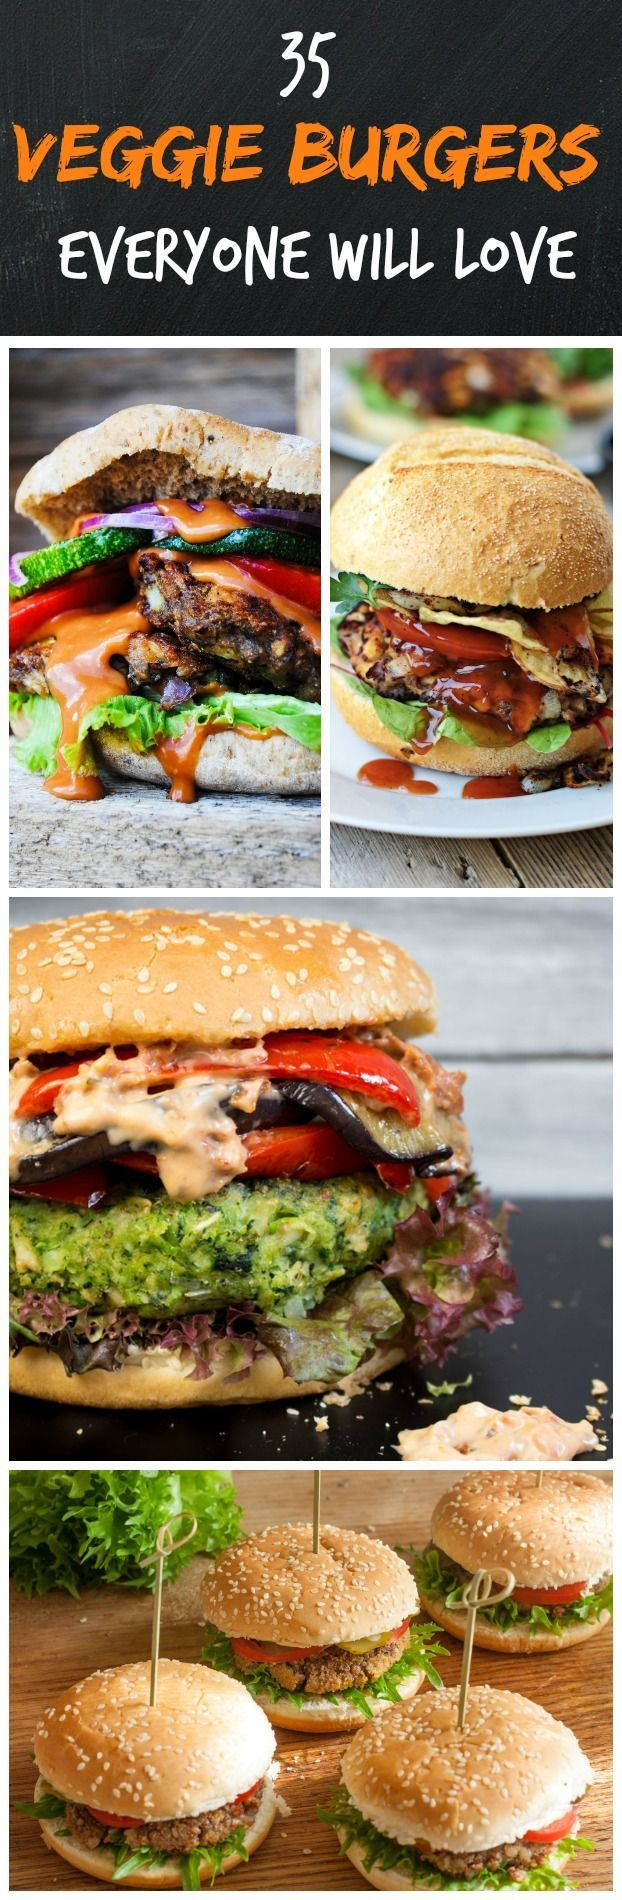 »A list of 35 totally drool-worthy veggie burgers that are perfect for meat-lovers, vegetarians, and vegans alike! Pair them with some crispy oven-baked wedges, a fresh salad, or some corn and you're in for a real treat« #vegan #burger #veggieburger #veganburger #food #foodideas #recipe